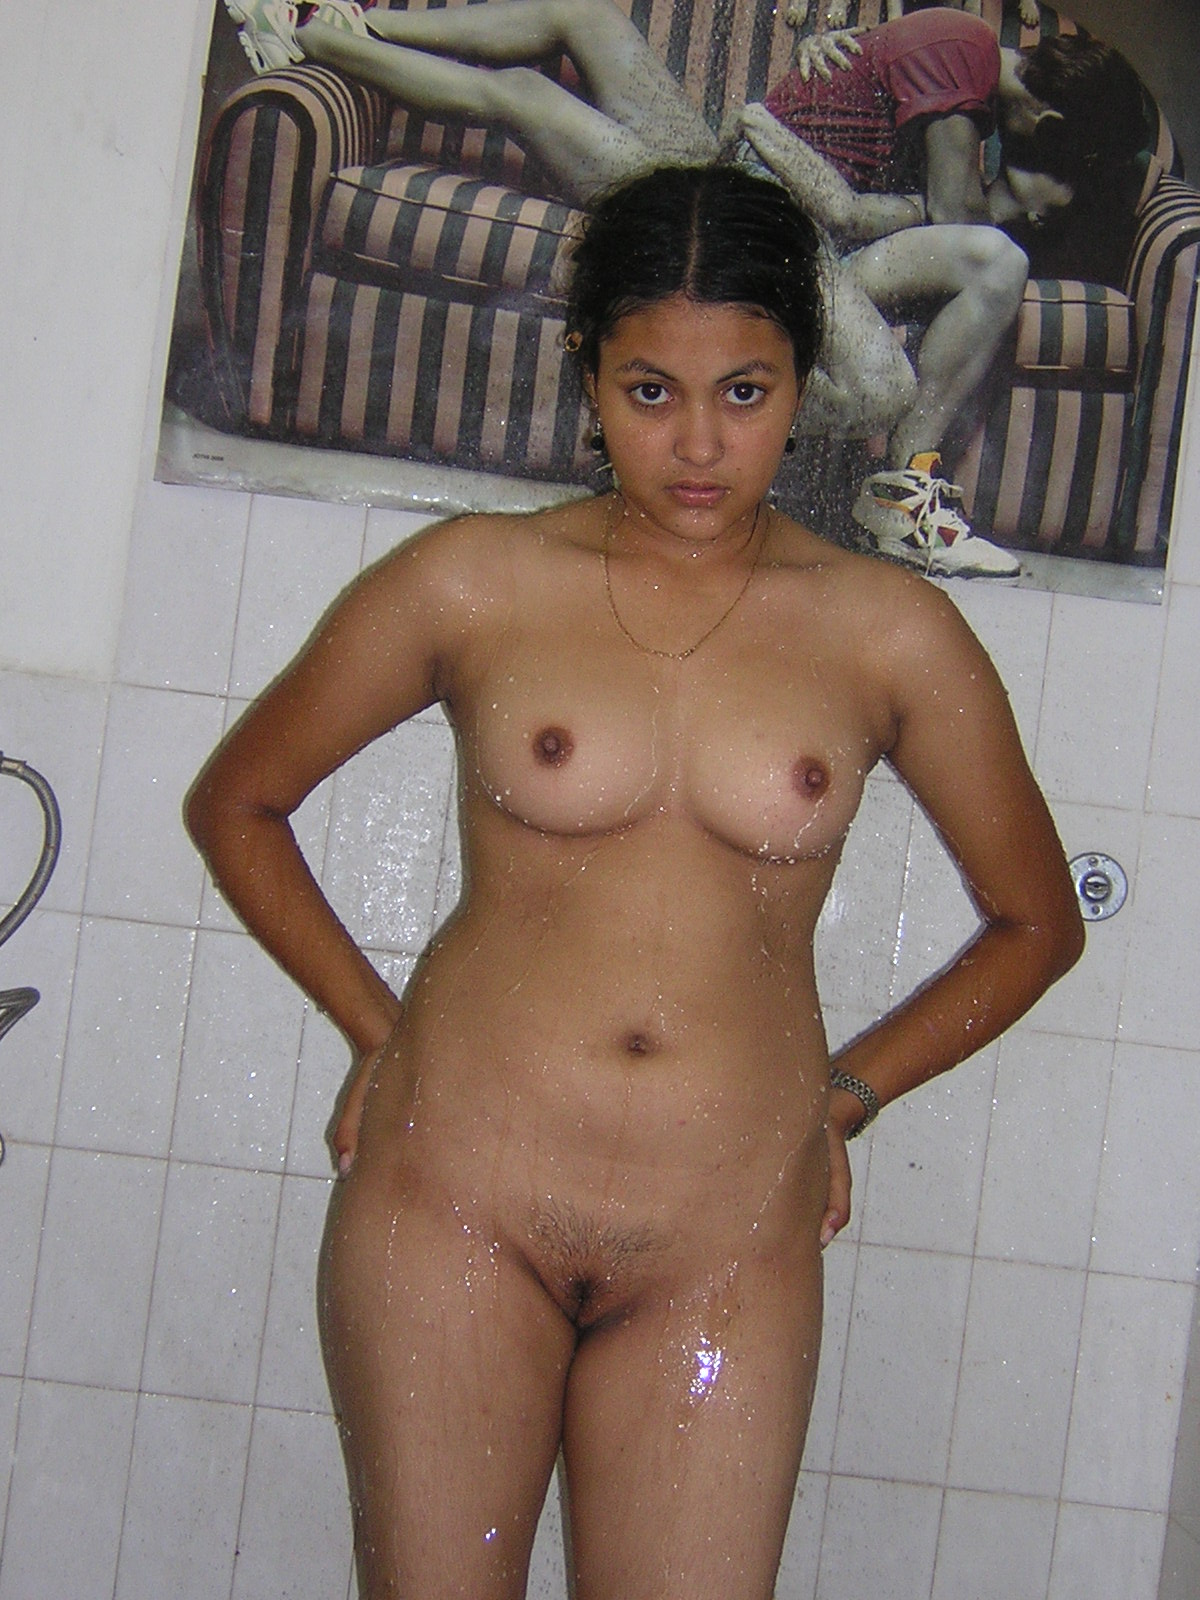 All indian girls nude sexey image